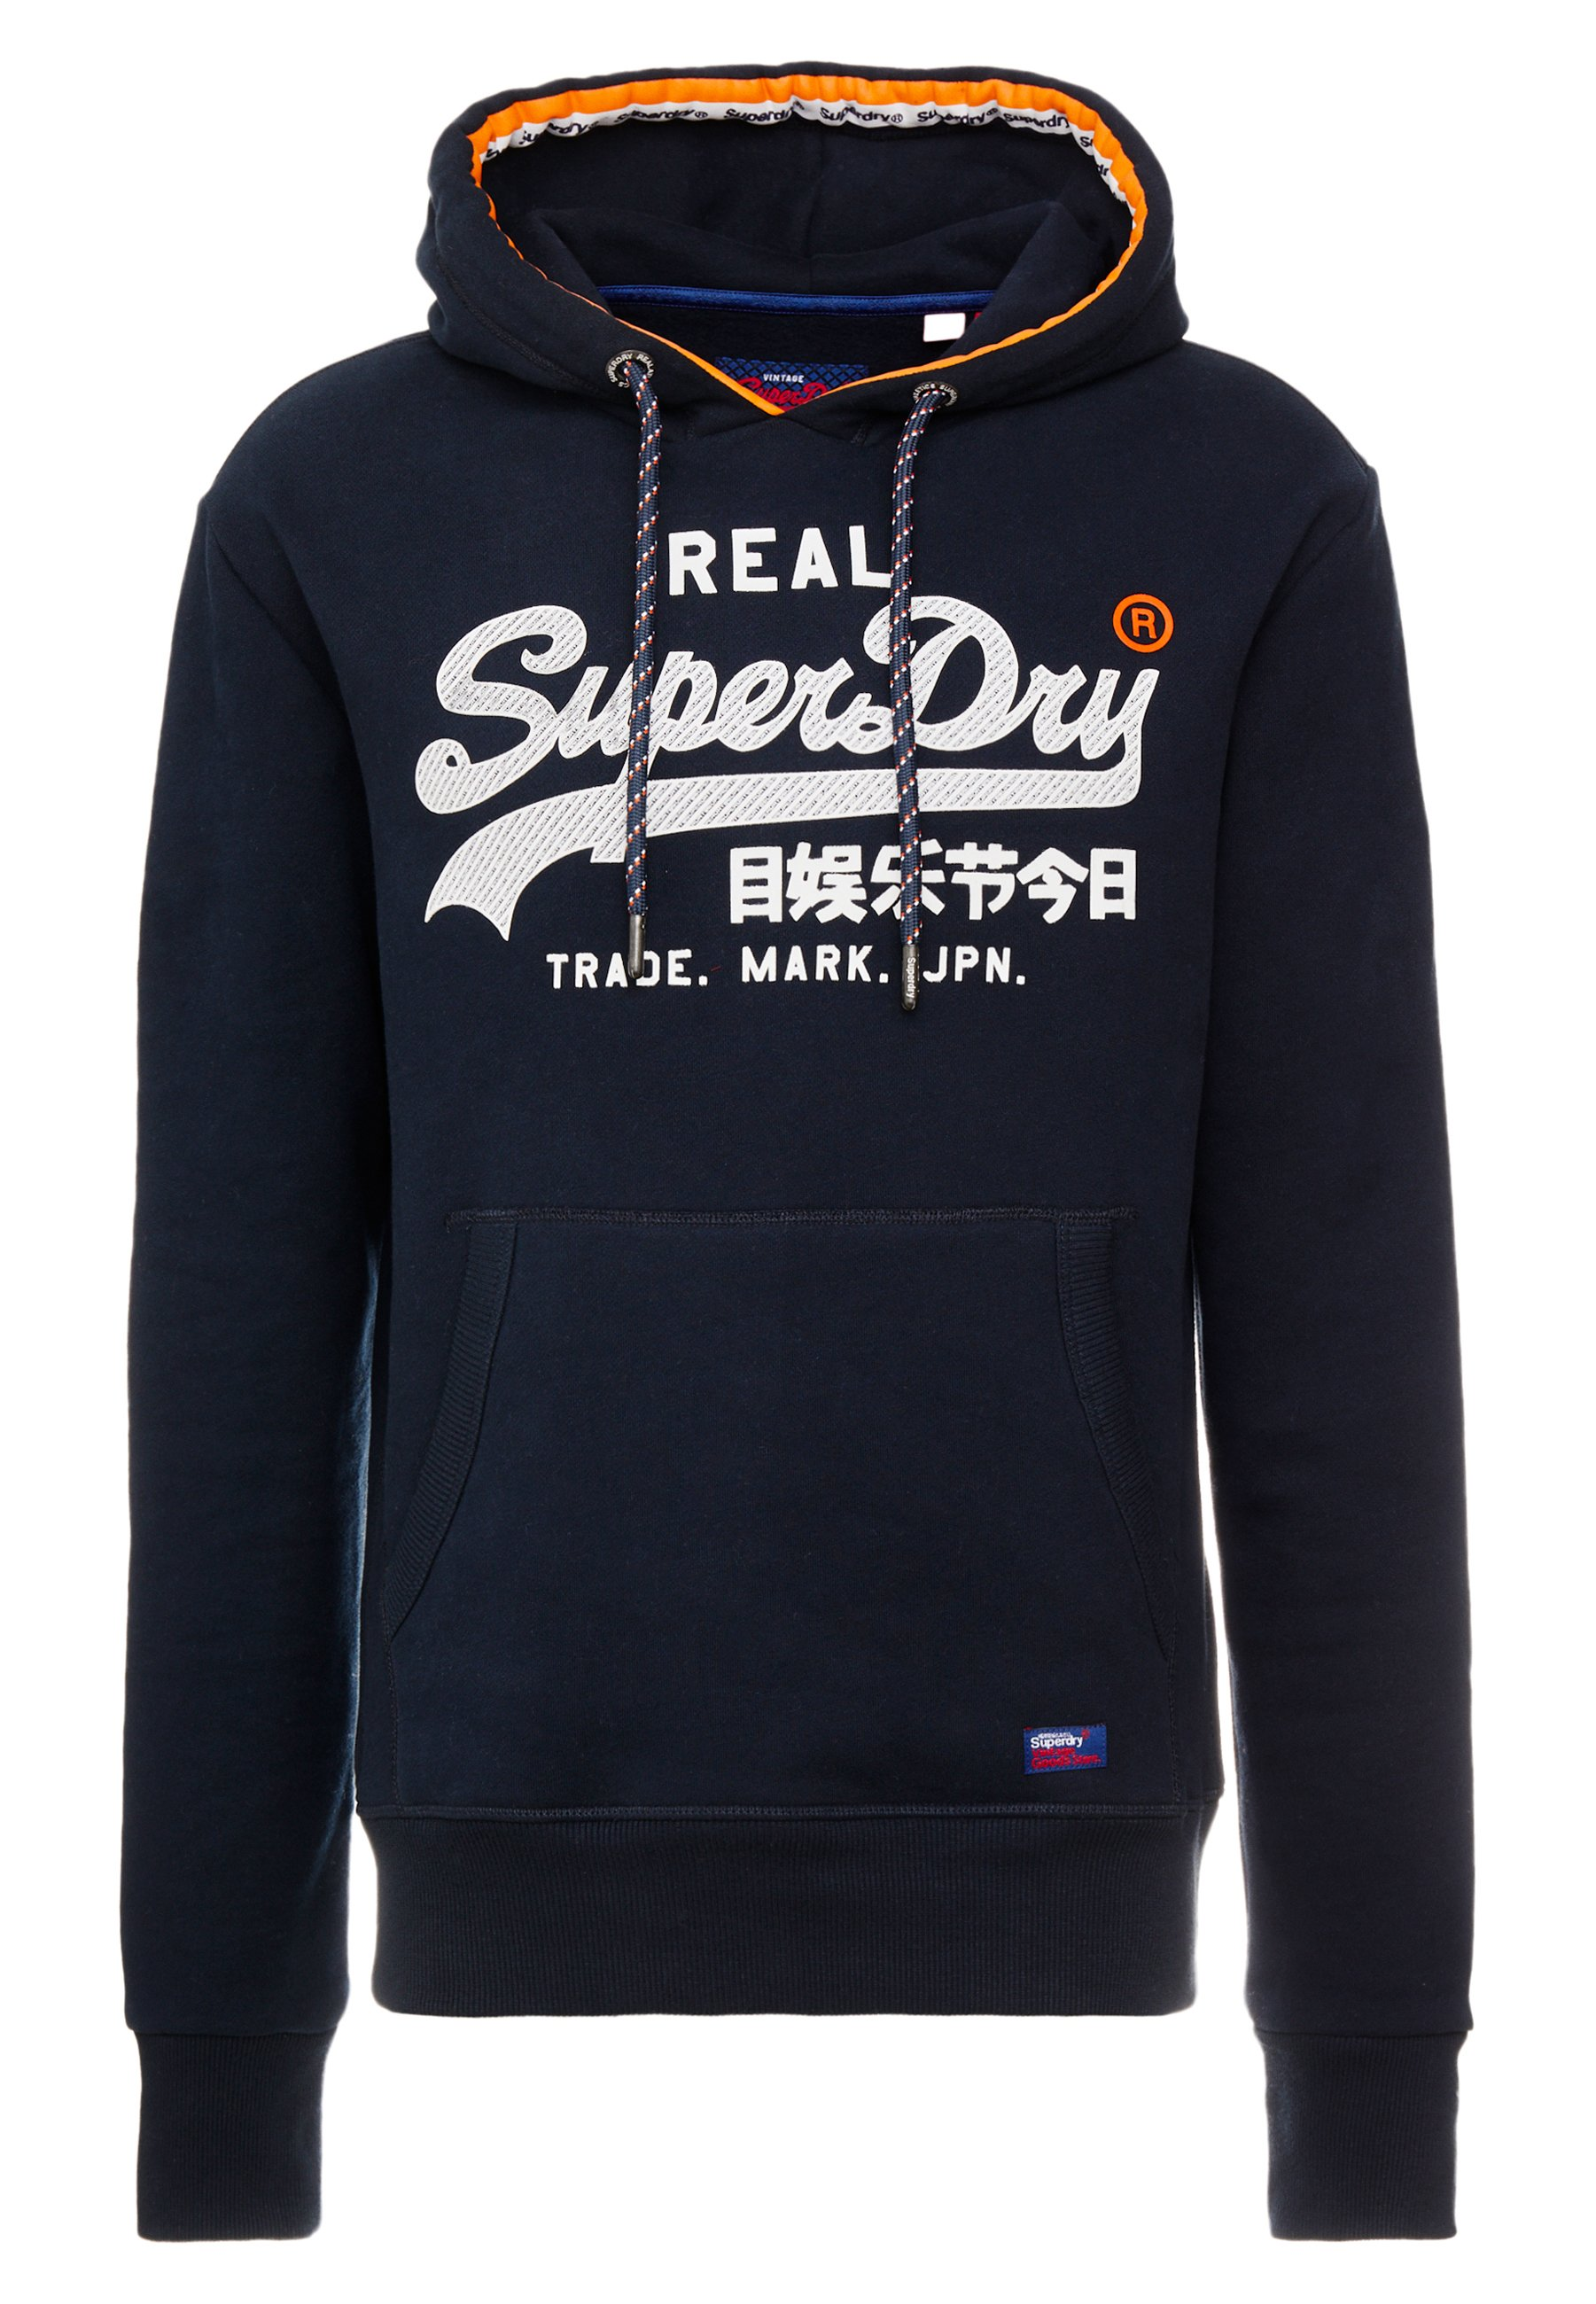 Superdry VINTAGE AUTHENTIC veste en sweat zippée navy